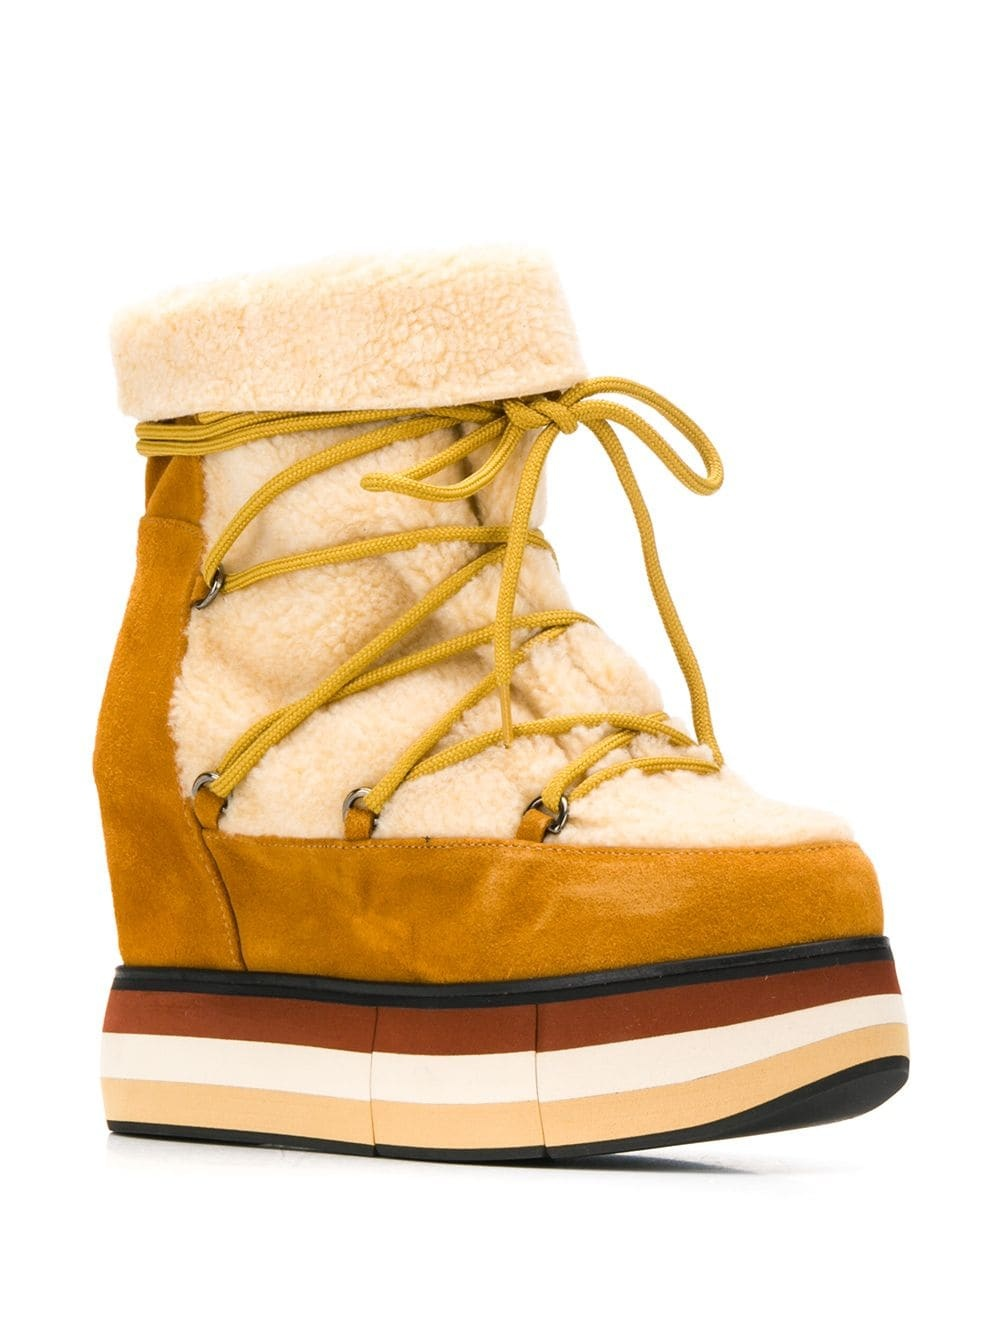 new style 543b7 5ee87 Paloma Barcelo kiran boots